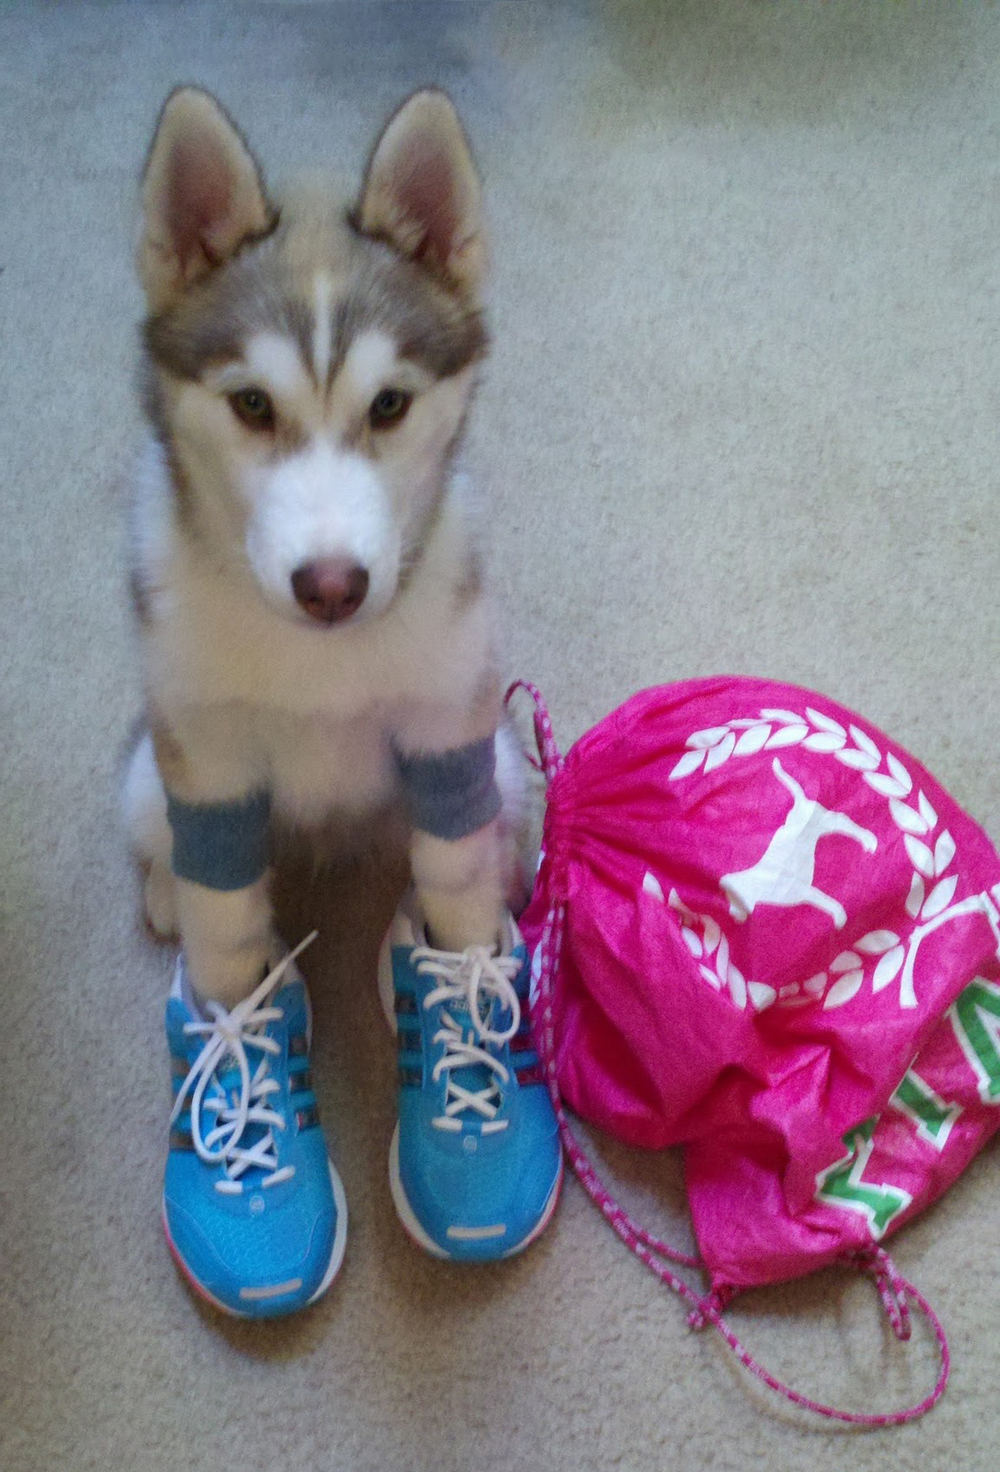 Because what's more adorable than a puppy dressed up as a run-fanatic? And Ryder was so cute at this age!